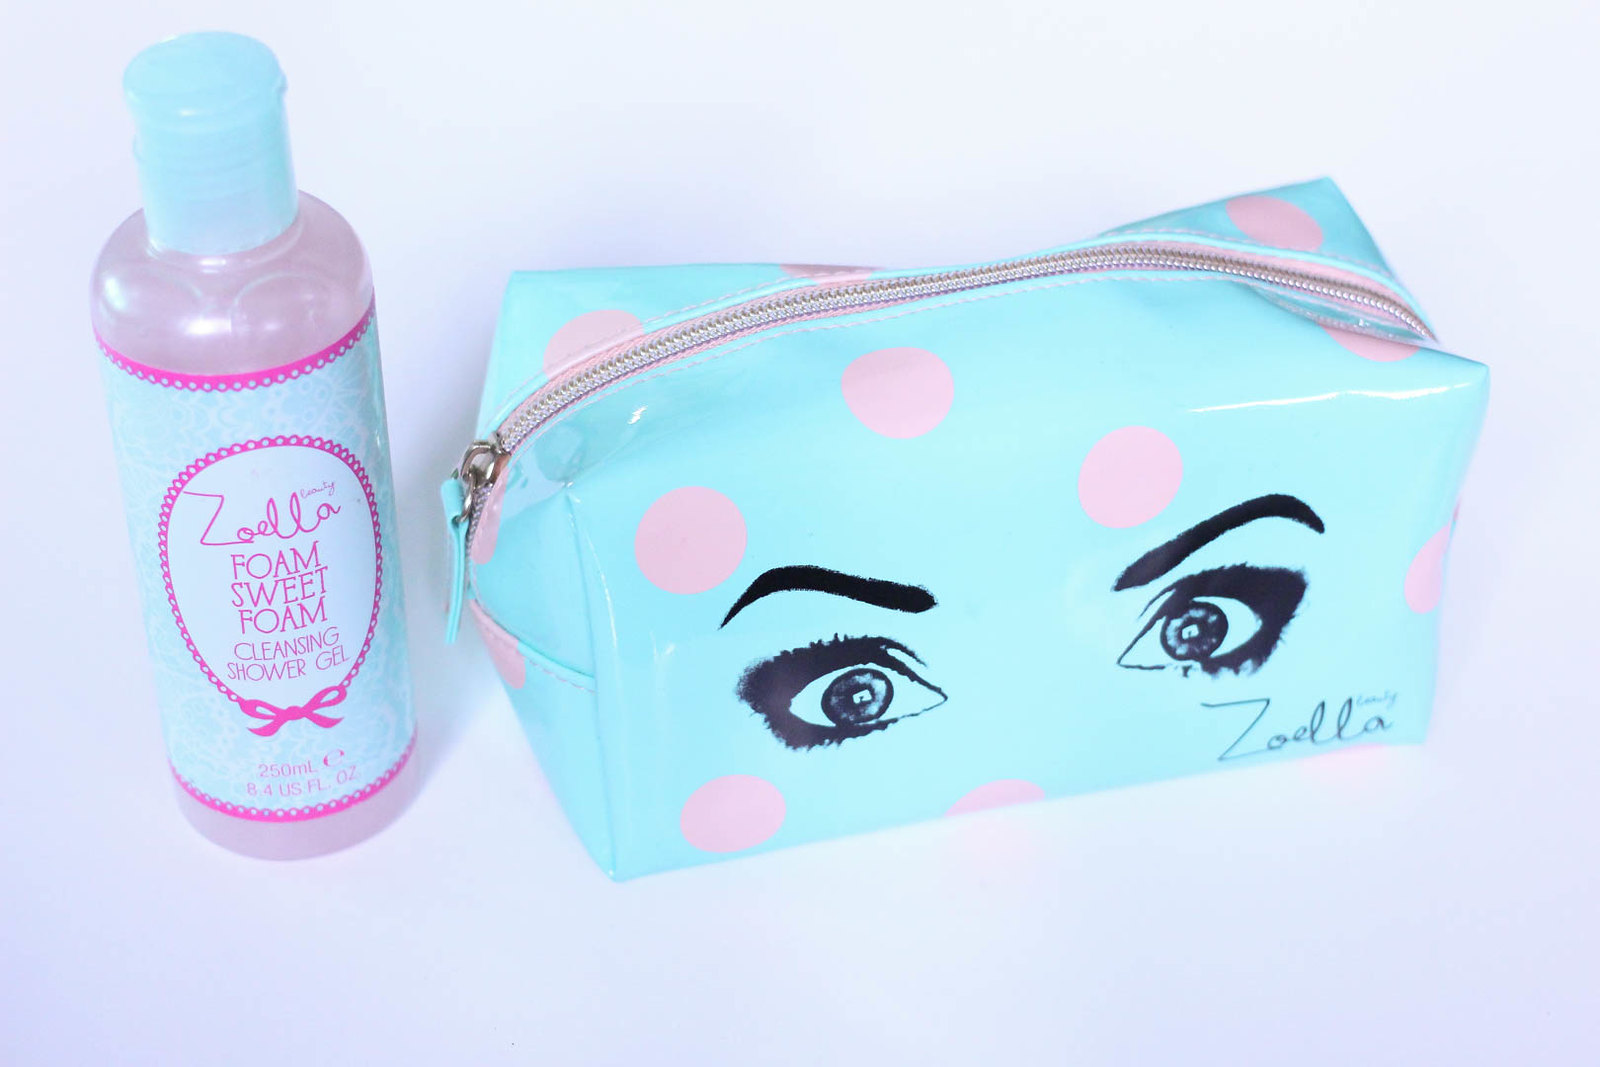 Zoella makeup bag mint green